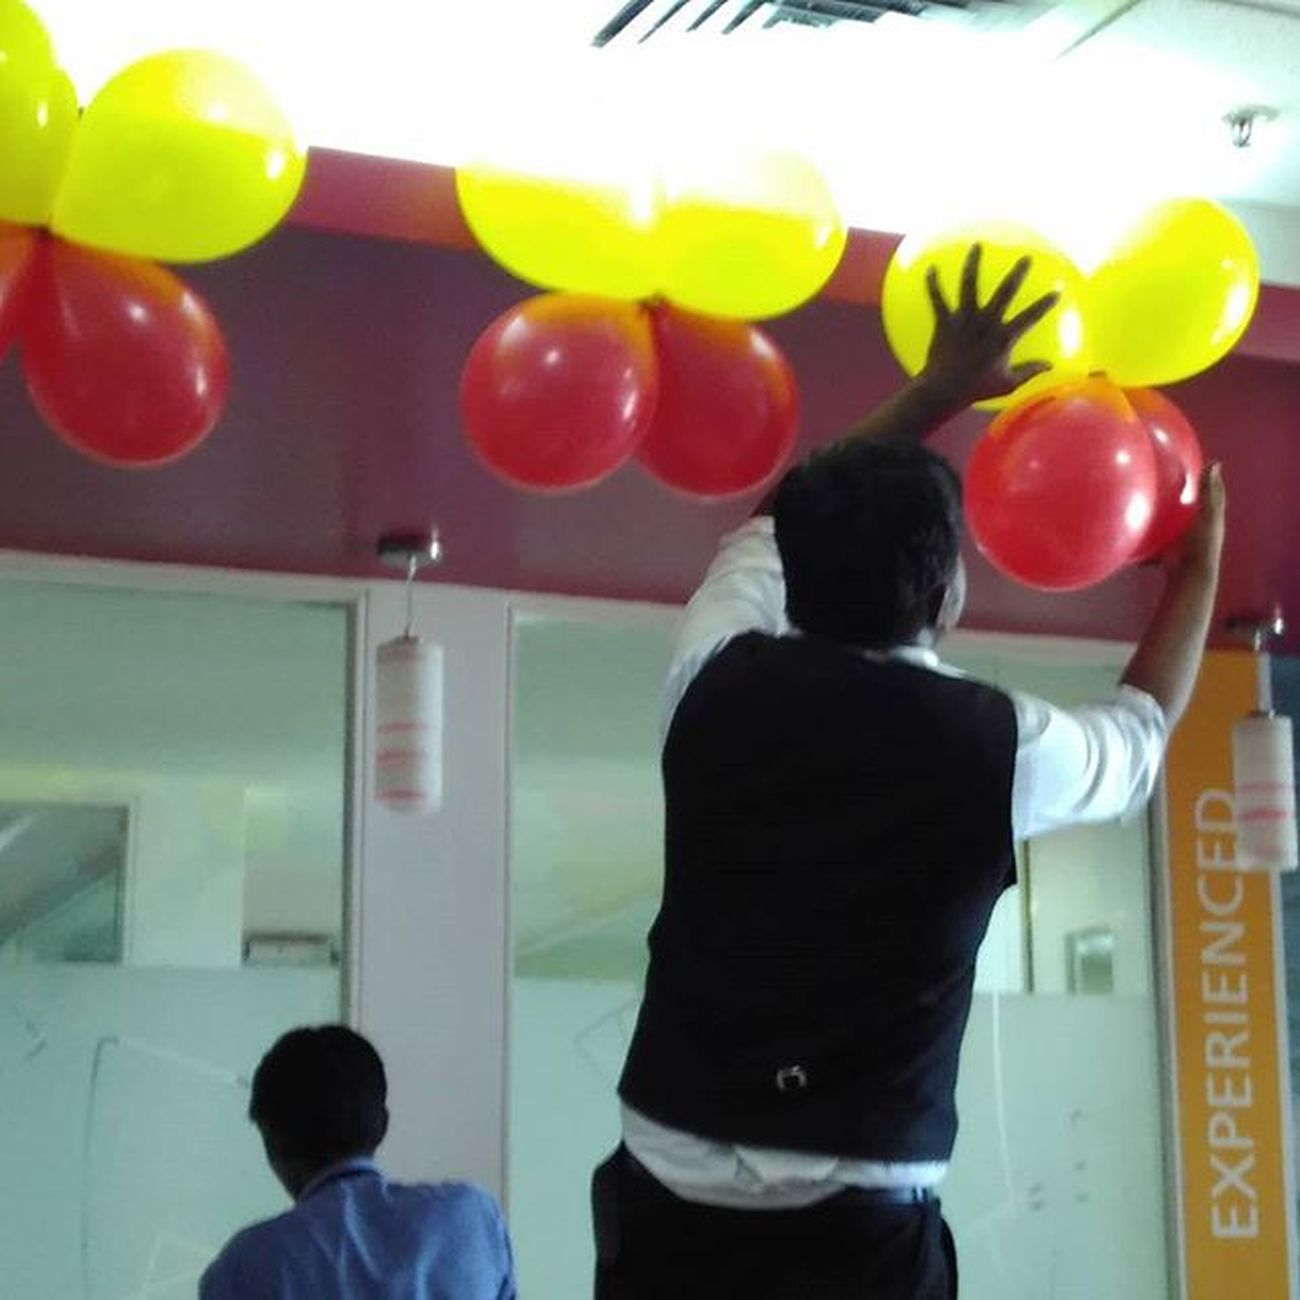 Activity Office Dimensiondata Manyata_tech_park Baloons Everywhere Kannadarajyotsava Beautiful Ilovebengaluru Instaevening Instalike Instapic